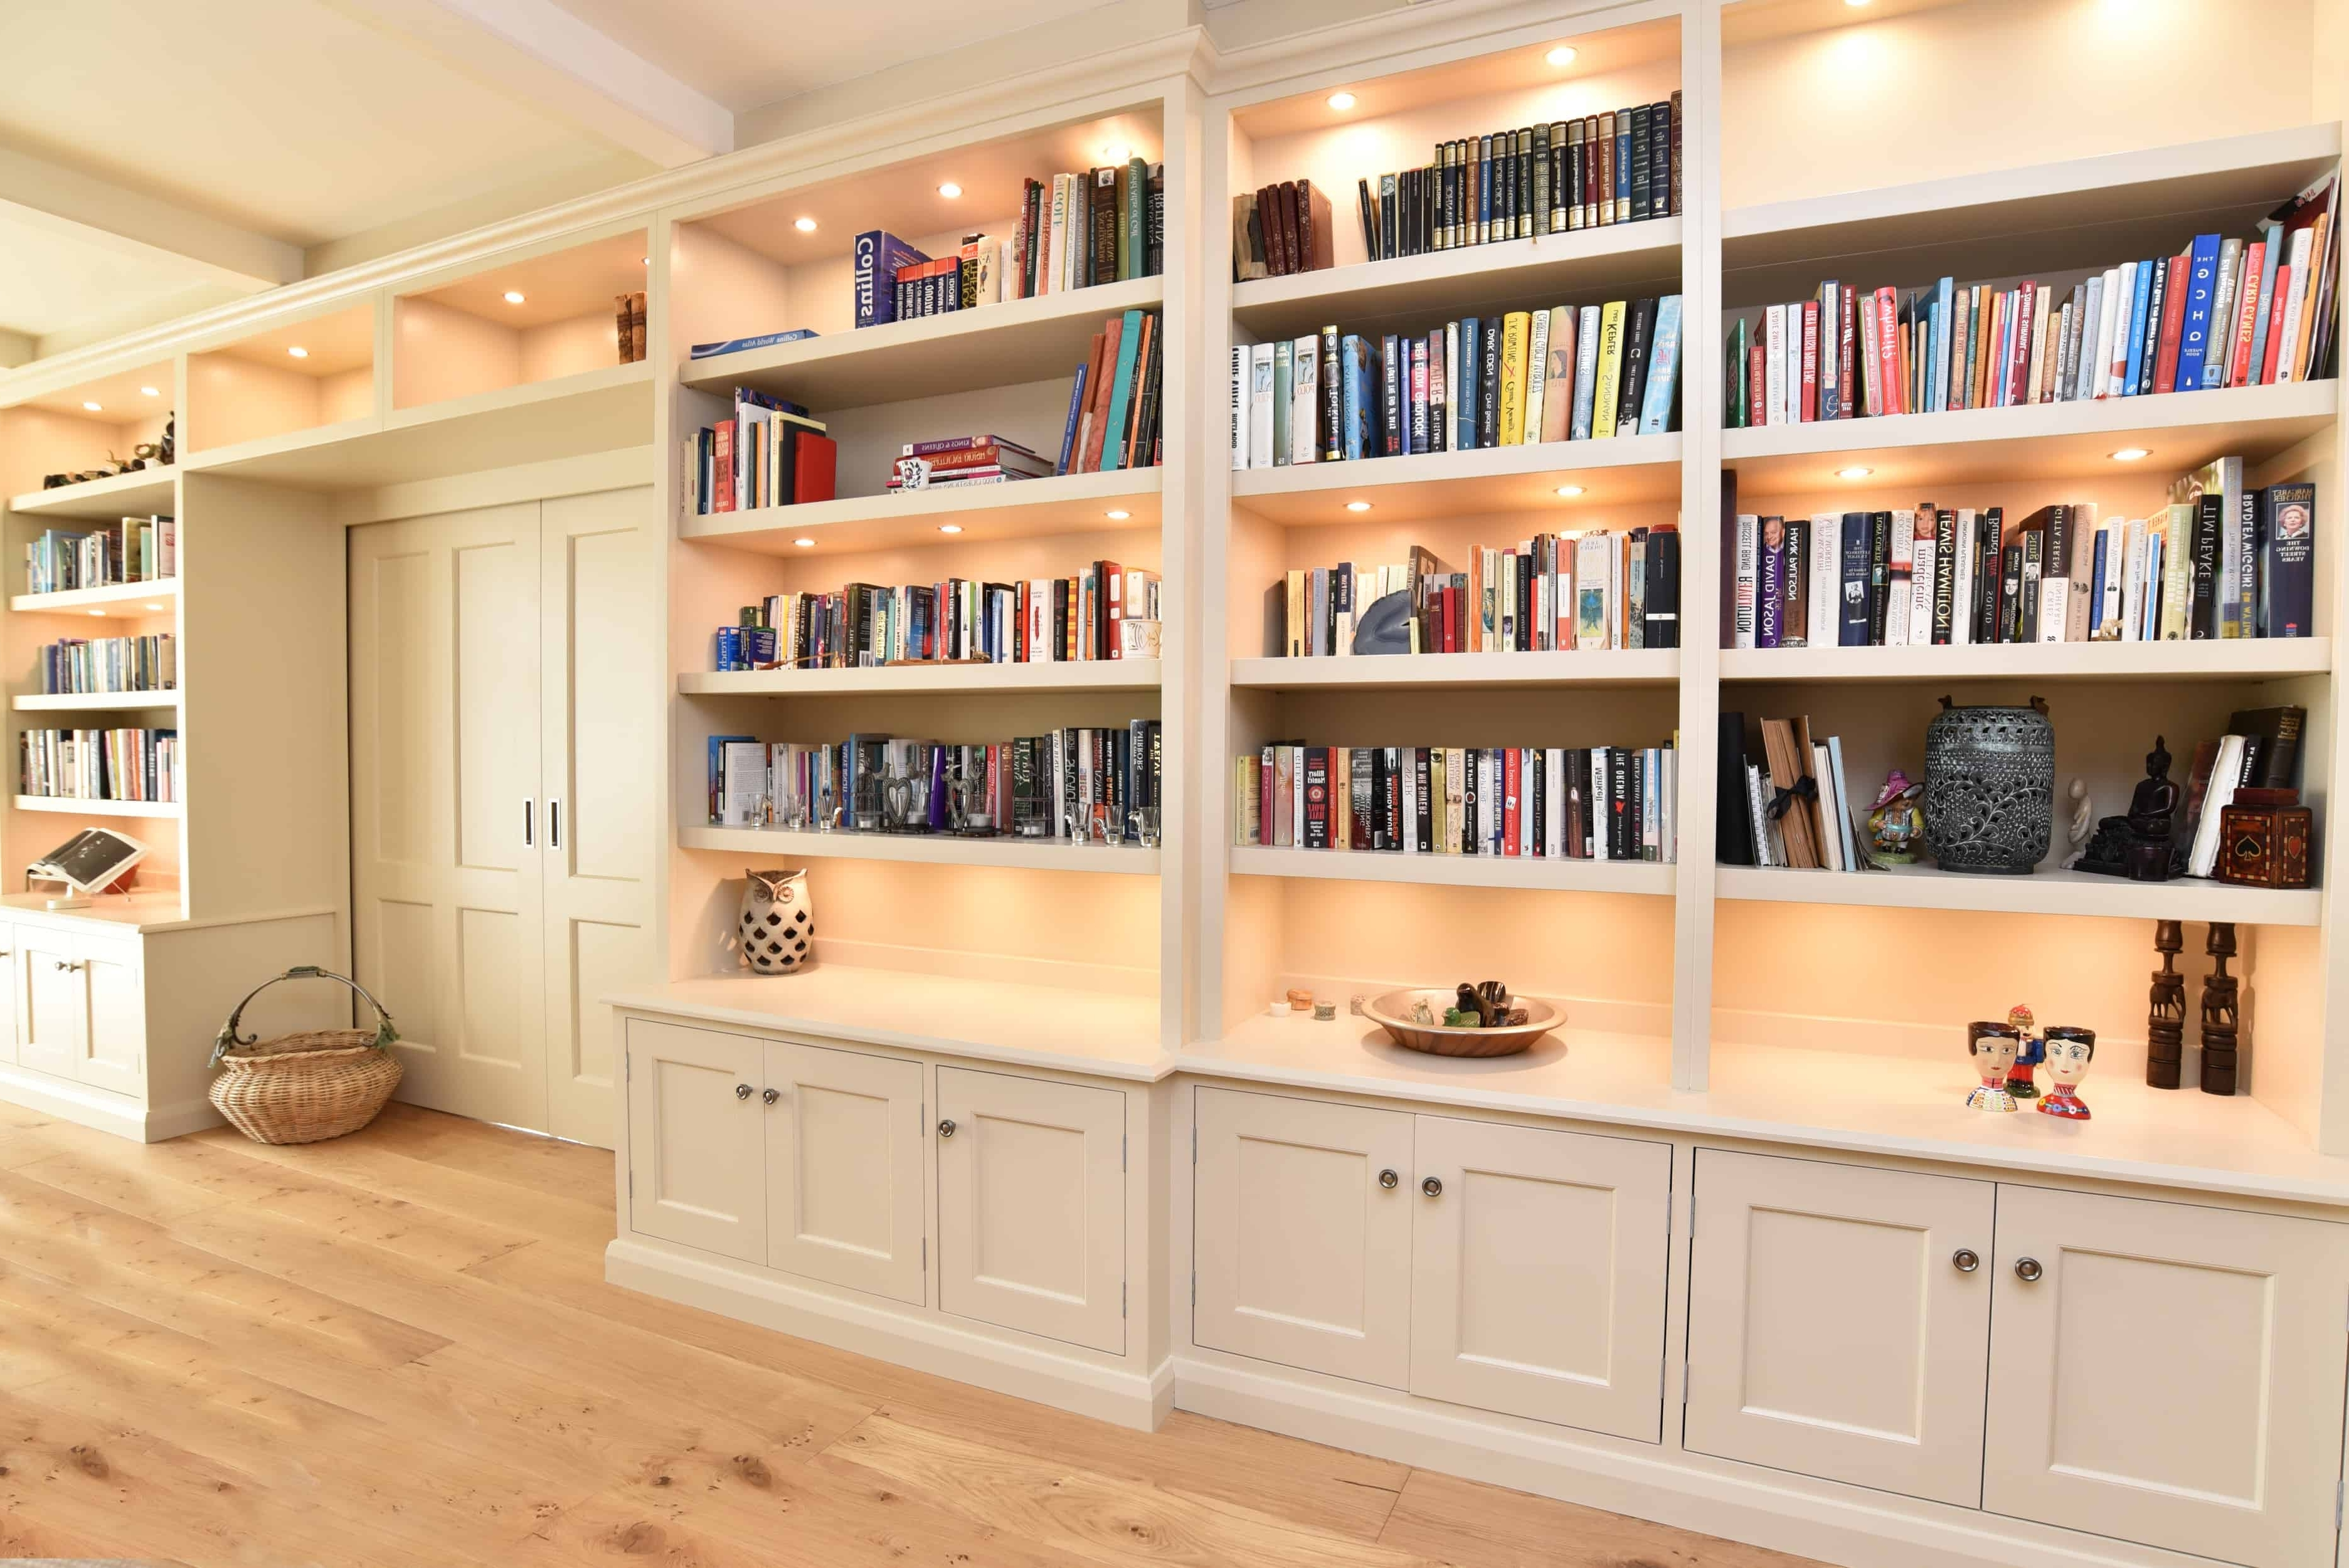 Bespoke Bookcases Intended For 2018 Bespoke Bookcases Harrogate (View 14 of 15)